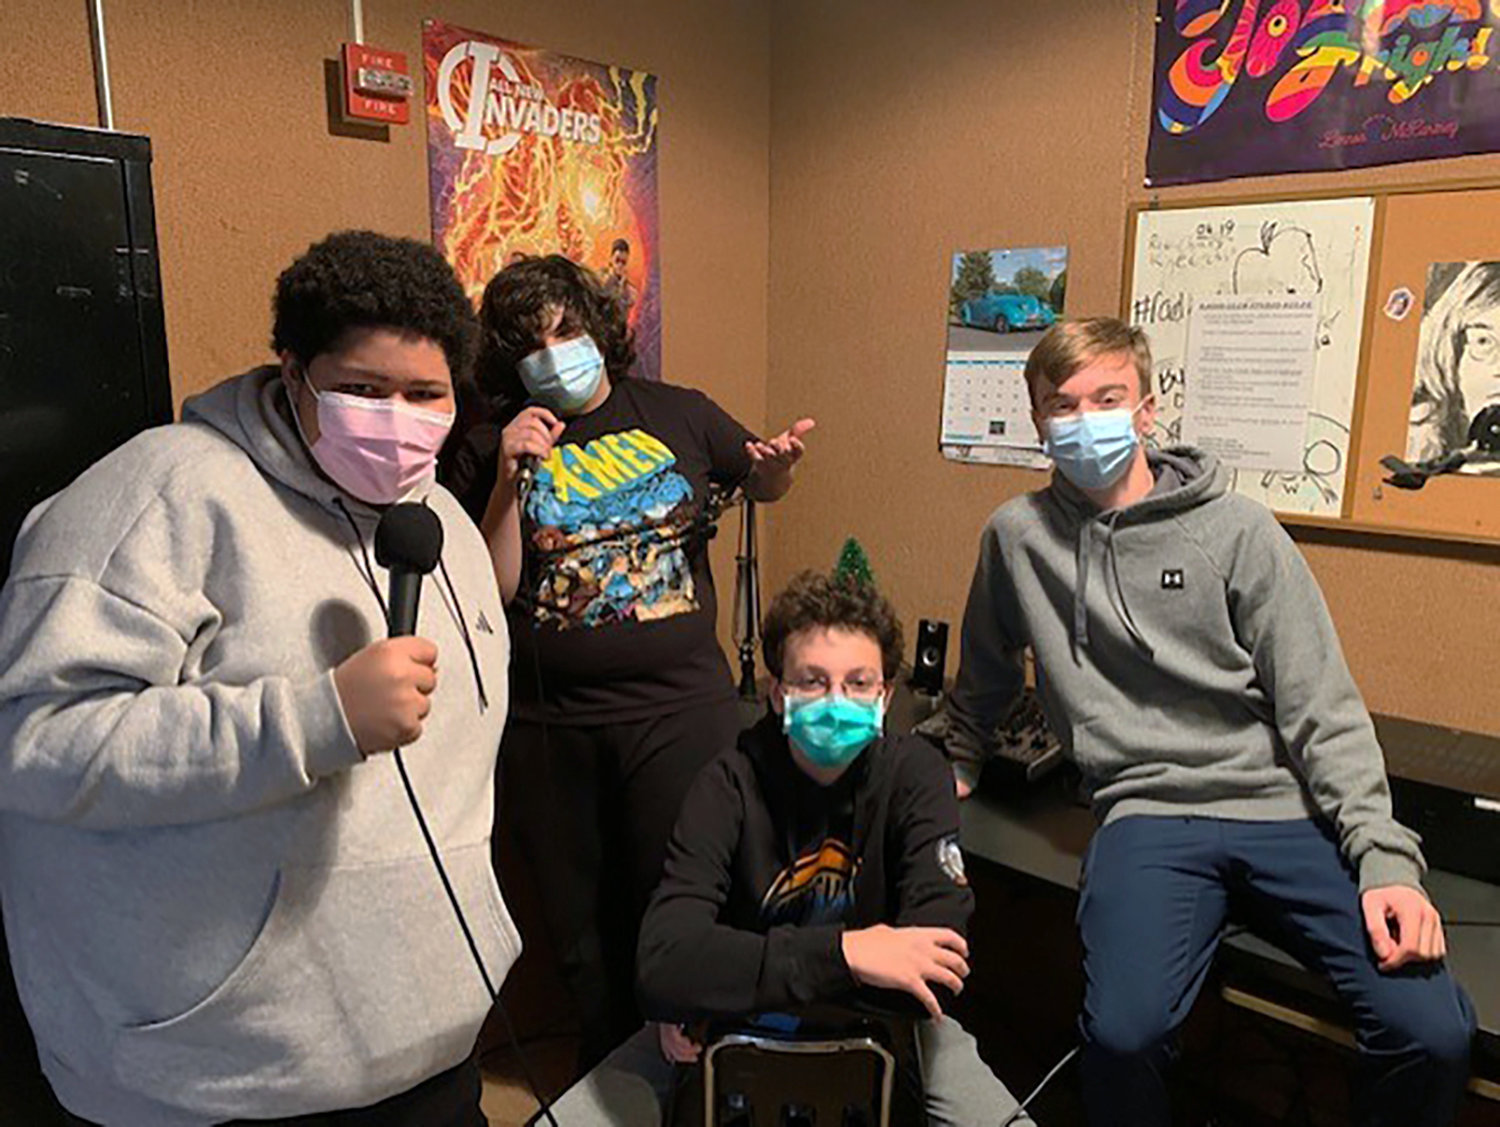 Seaford High School's Radio Club records a weekly podcast and plays music in the cafeterias each day during lunch periods.